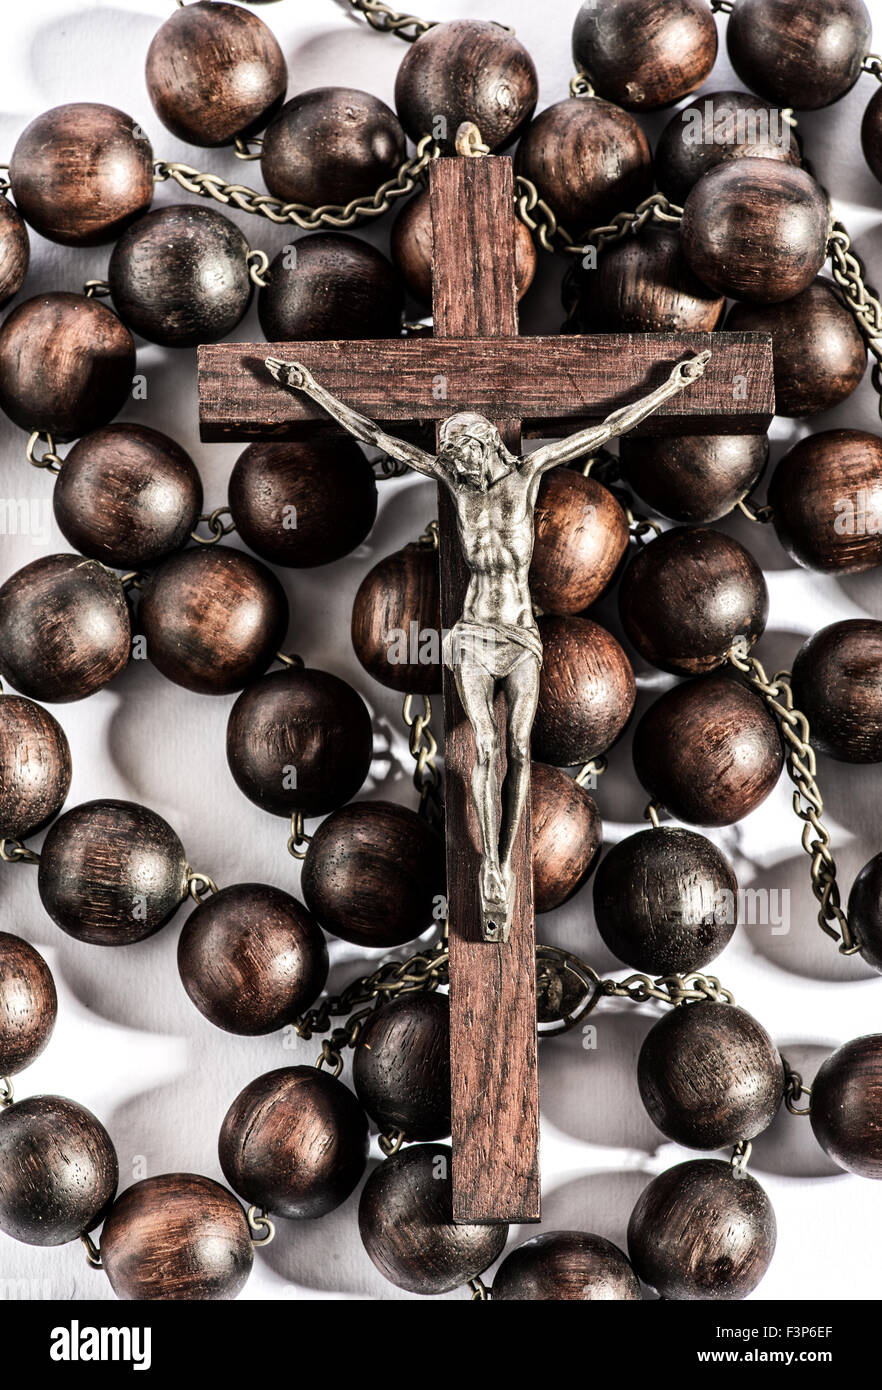 Wooden rosary with a crucifix depicting a crucified Christ on a wooden cross - Stock Image